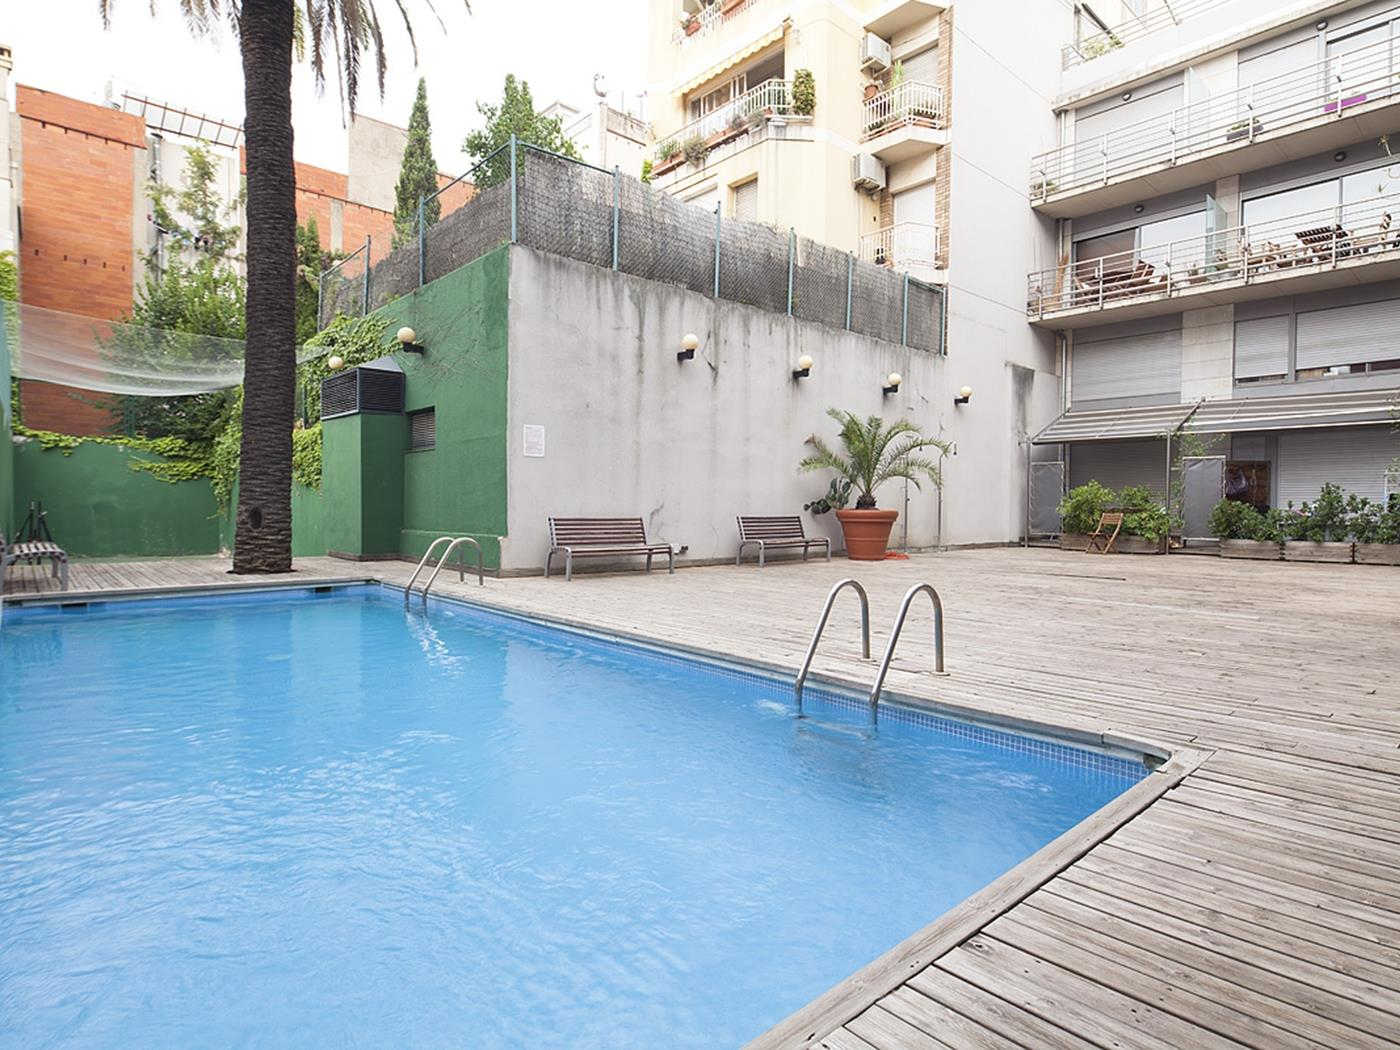 Duplex in the Center in Putxet with Pool for 6 - My Space Barcelona Apartments